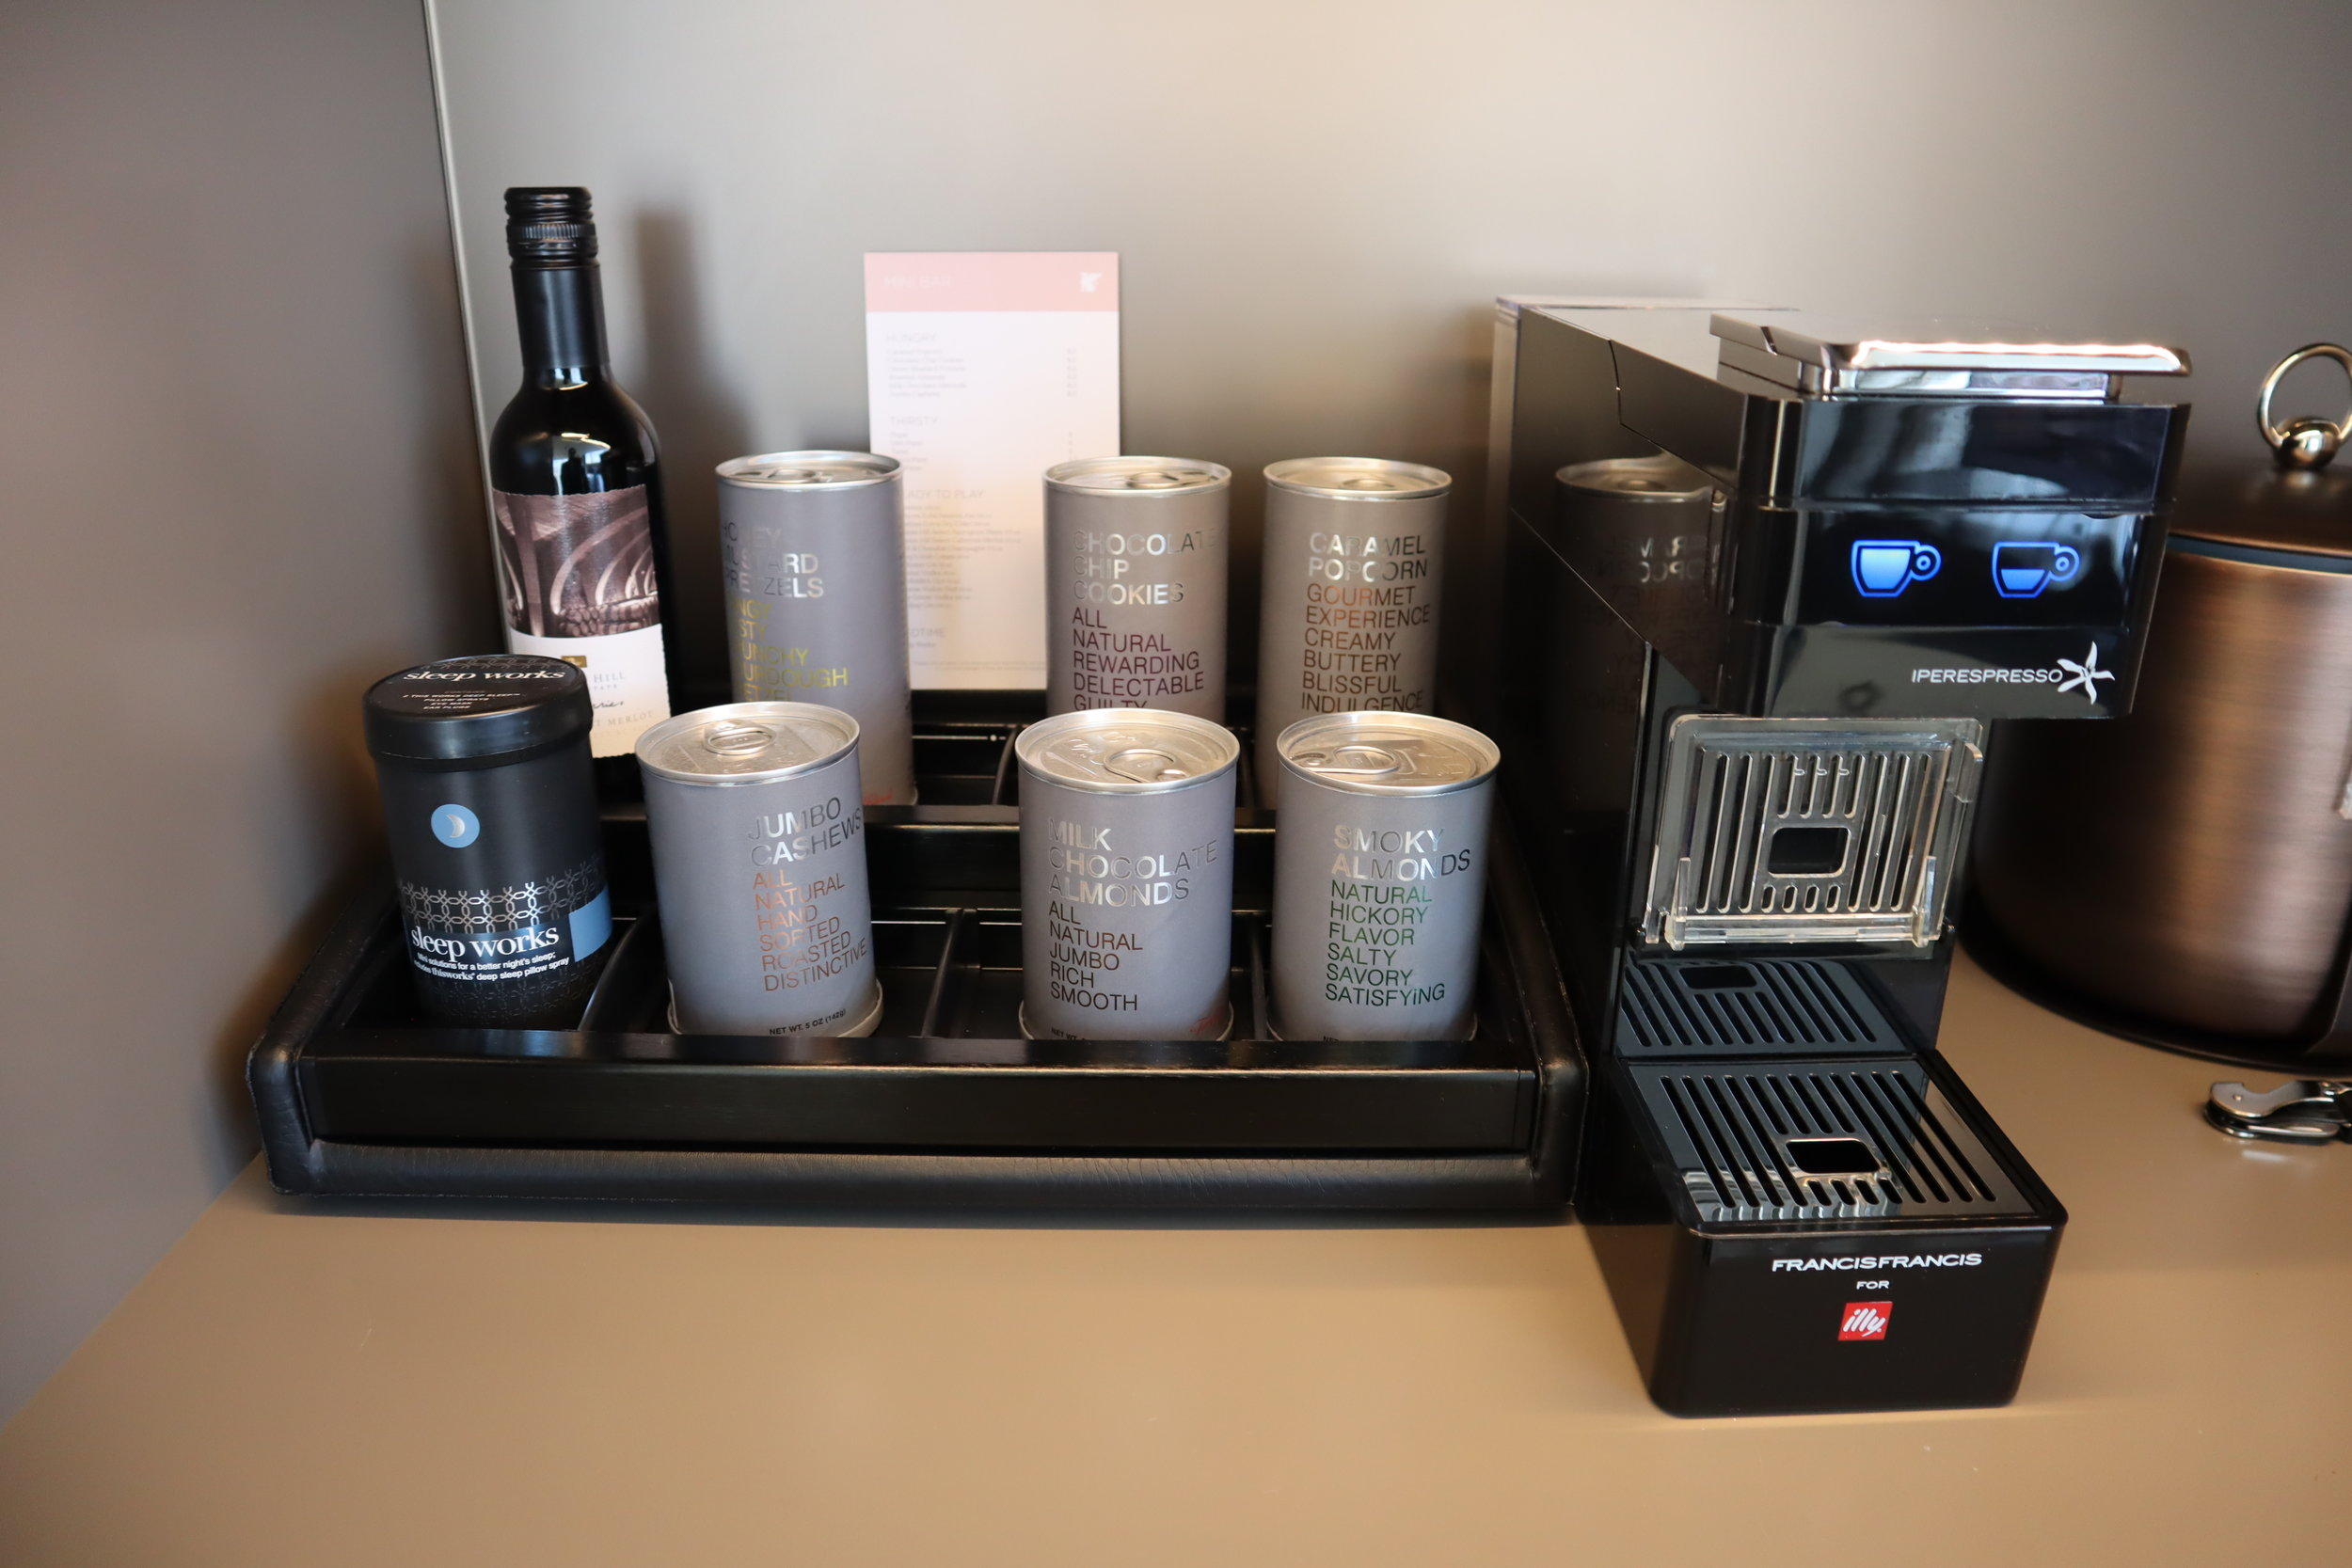 JW Marriott Parq Vancouver – Pantry contents